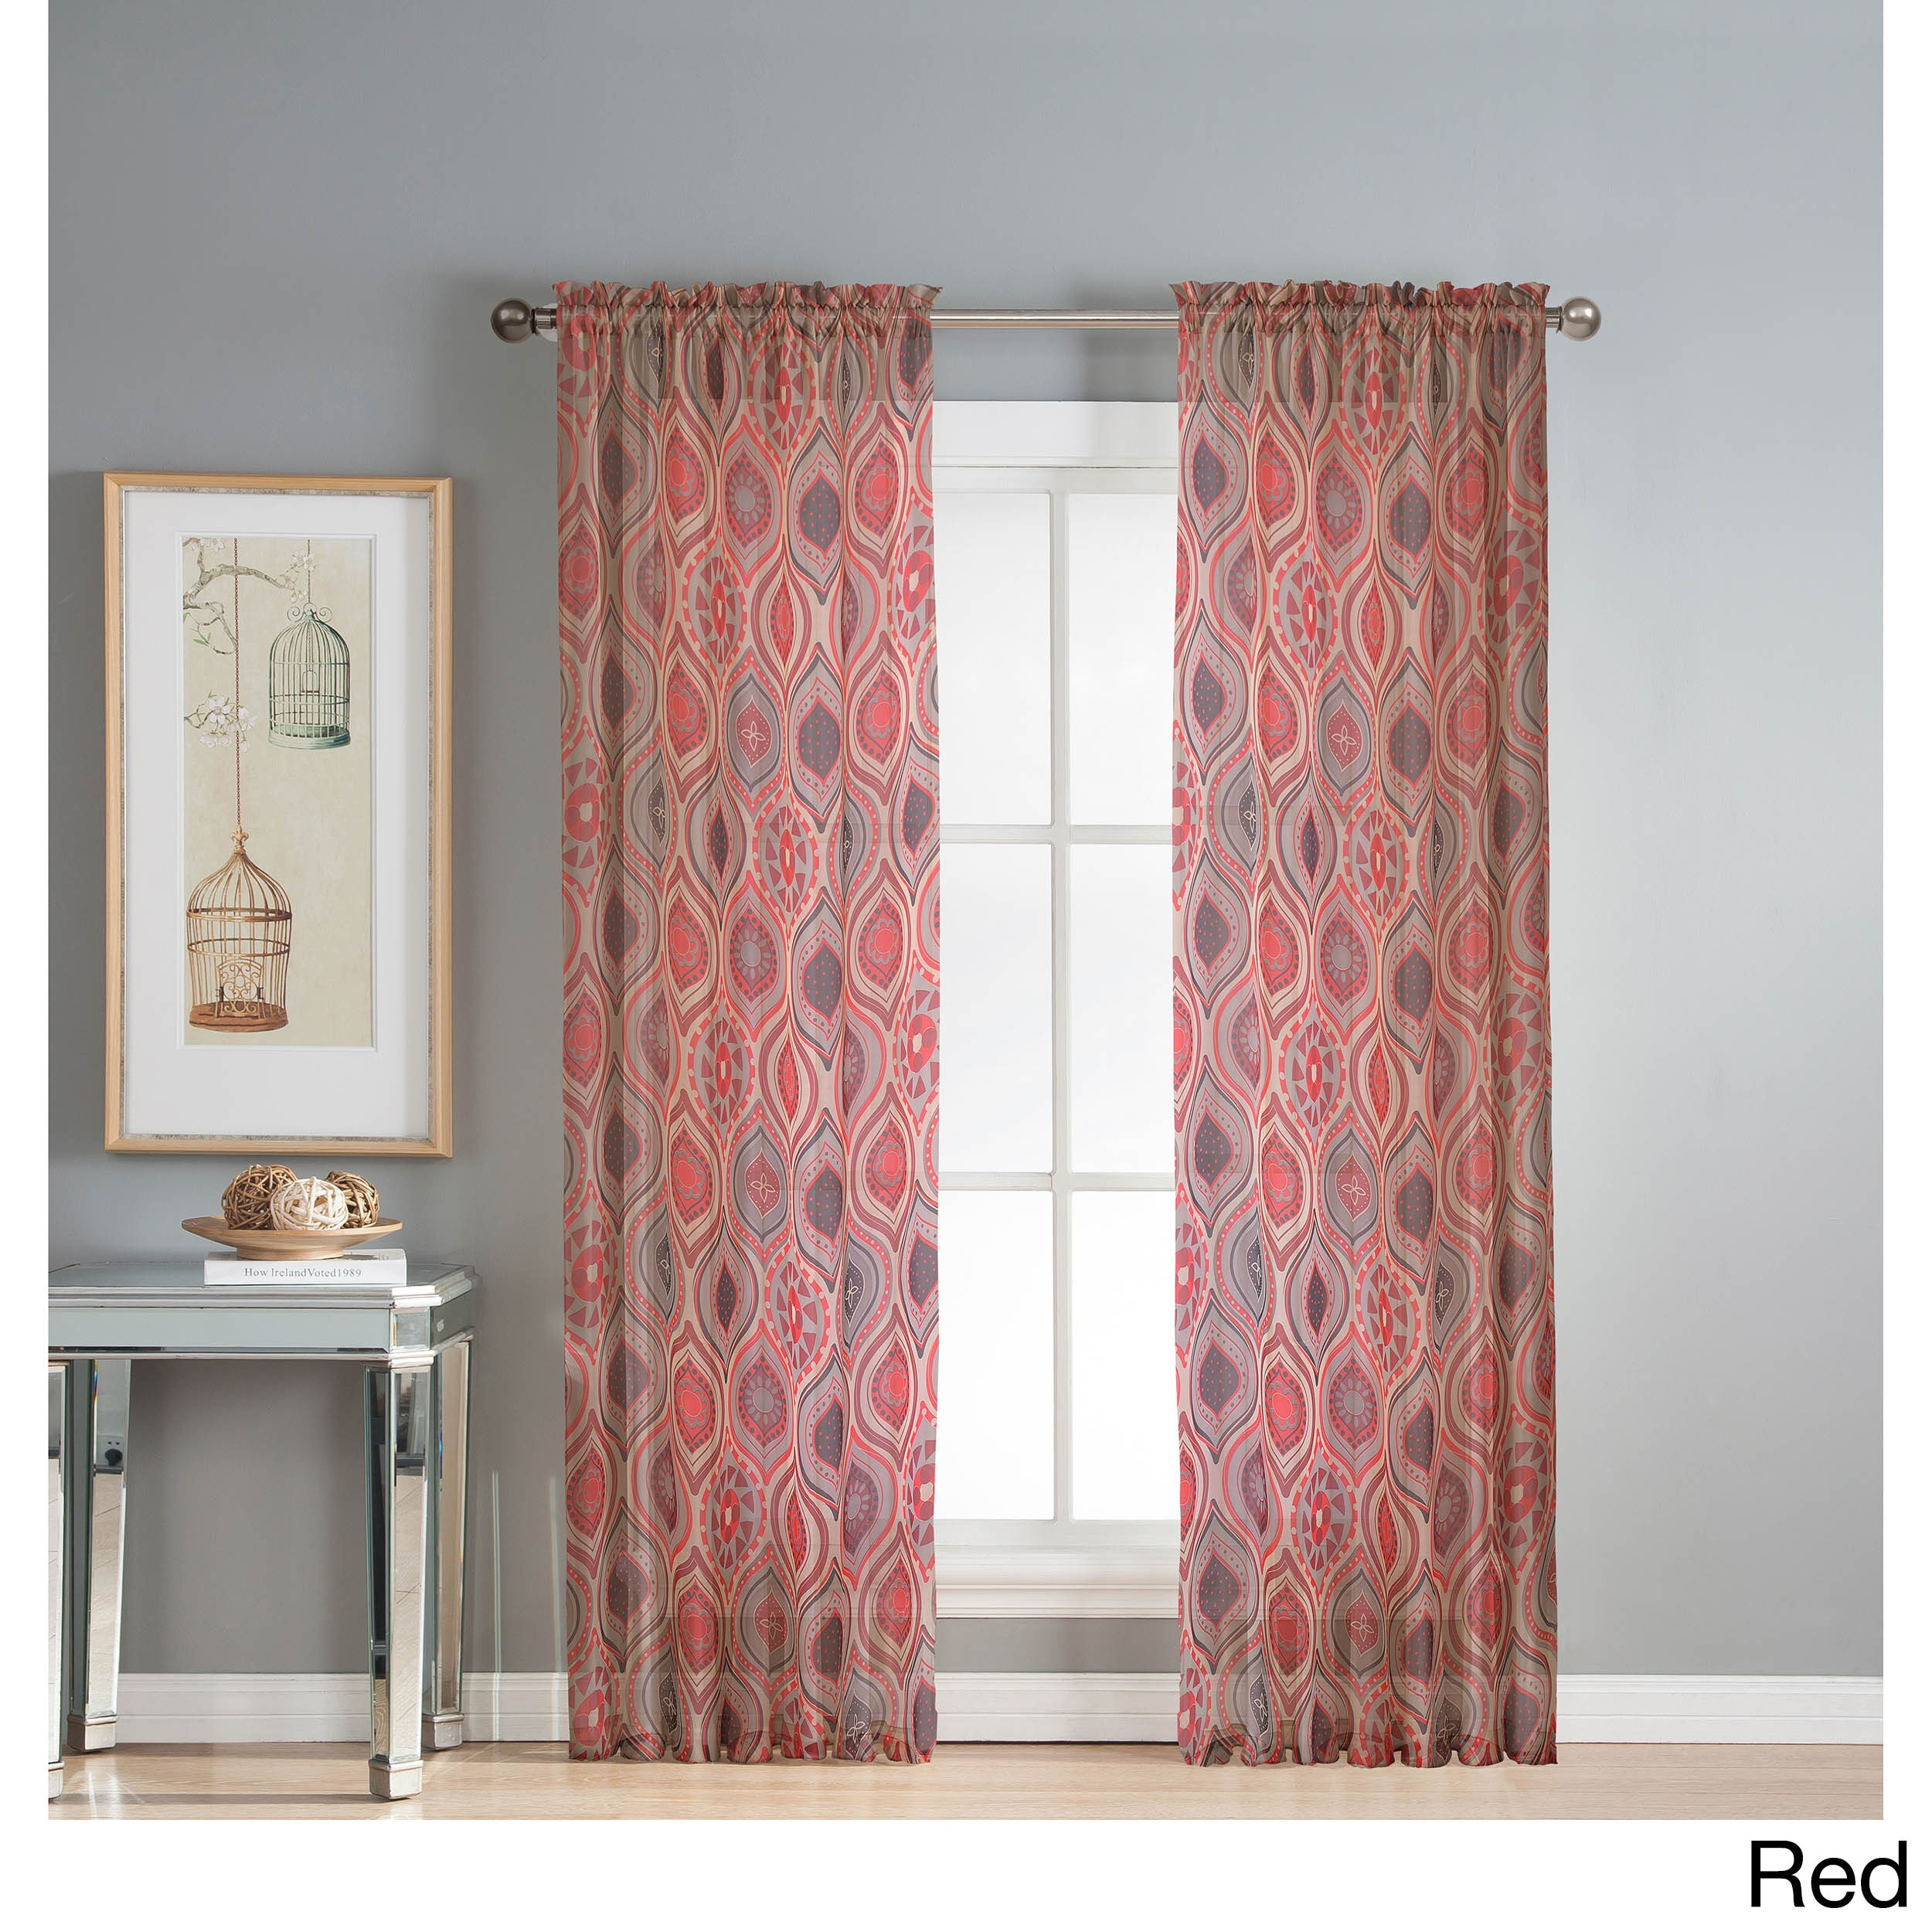 Shop Window Elements Olina Printed Sheer Extra Wide 96 Inch Grommet Curtain Panel